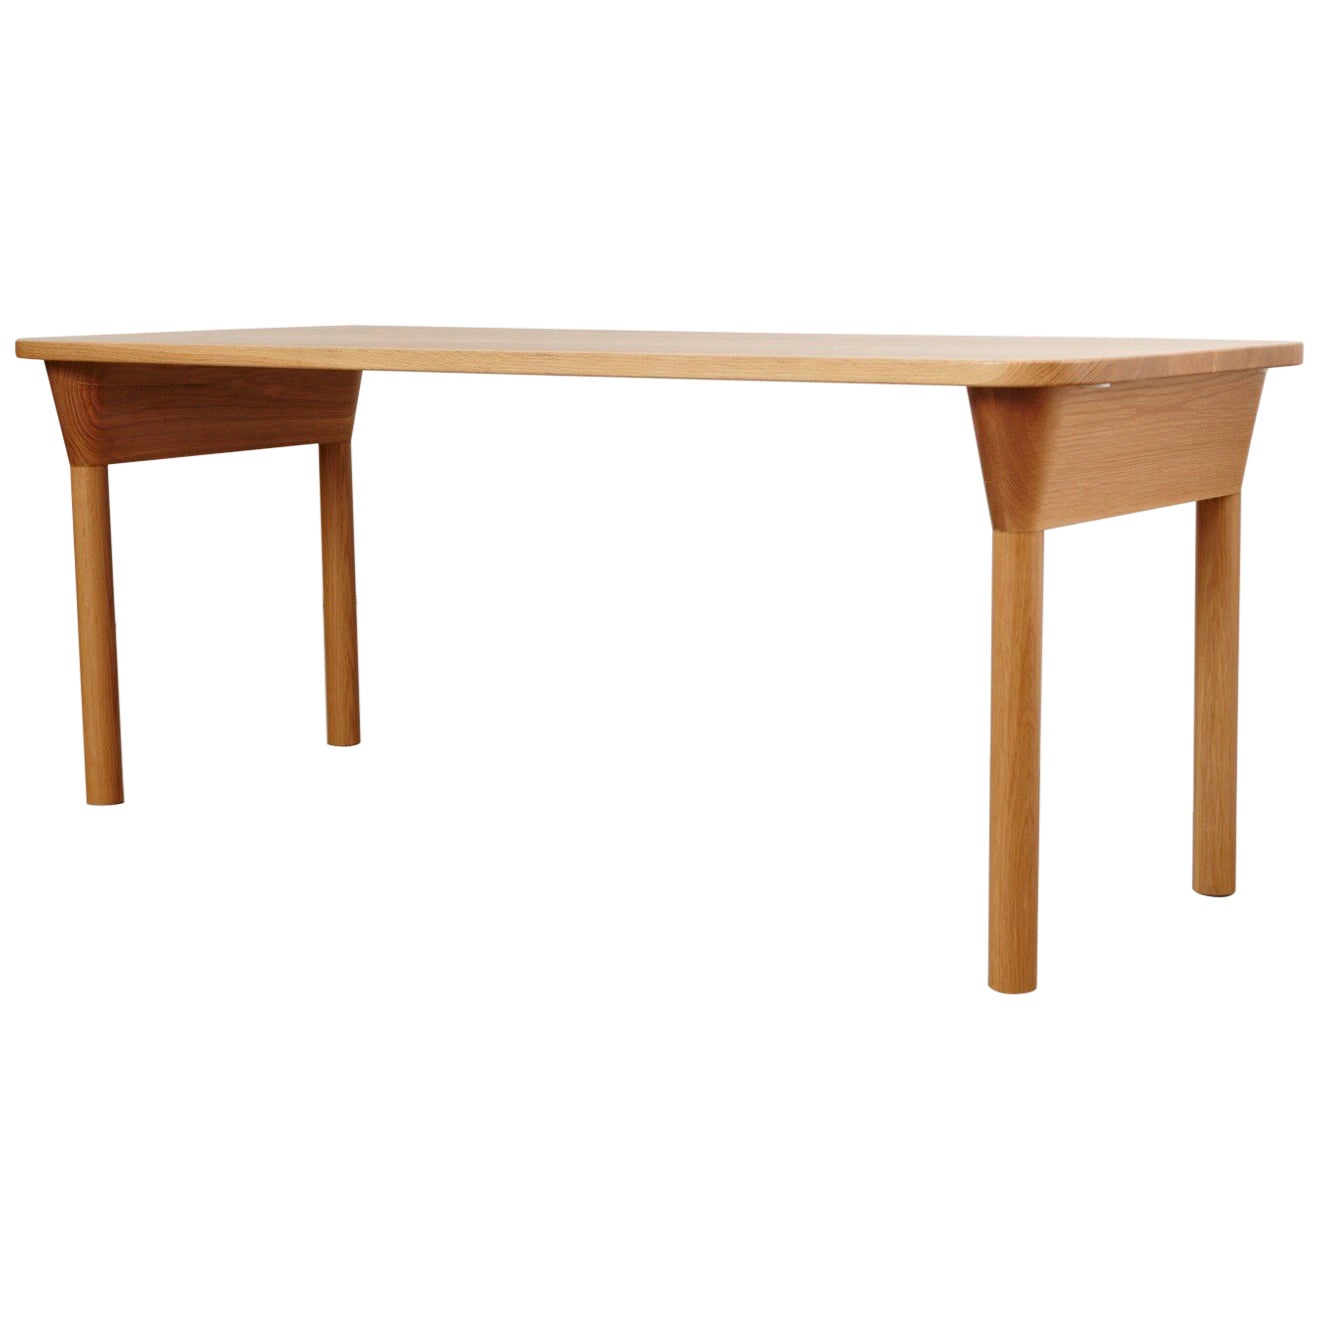 """Column Table"" Minimalist Solid Wood Oak Dining Table or Desk"